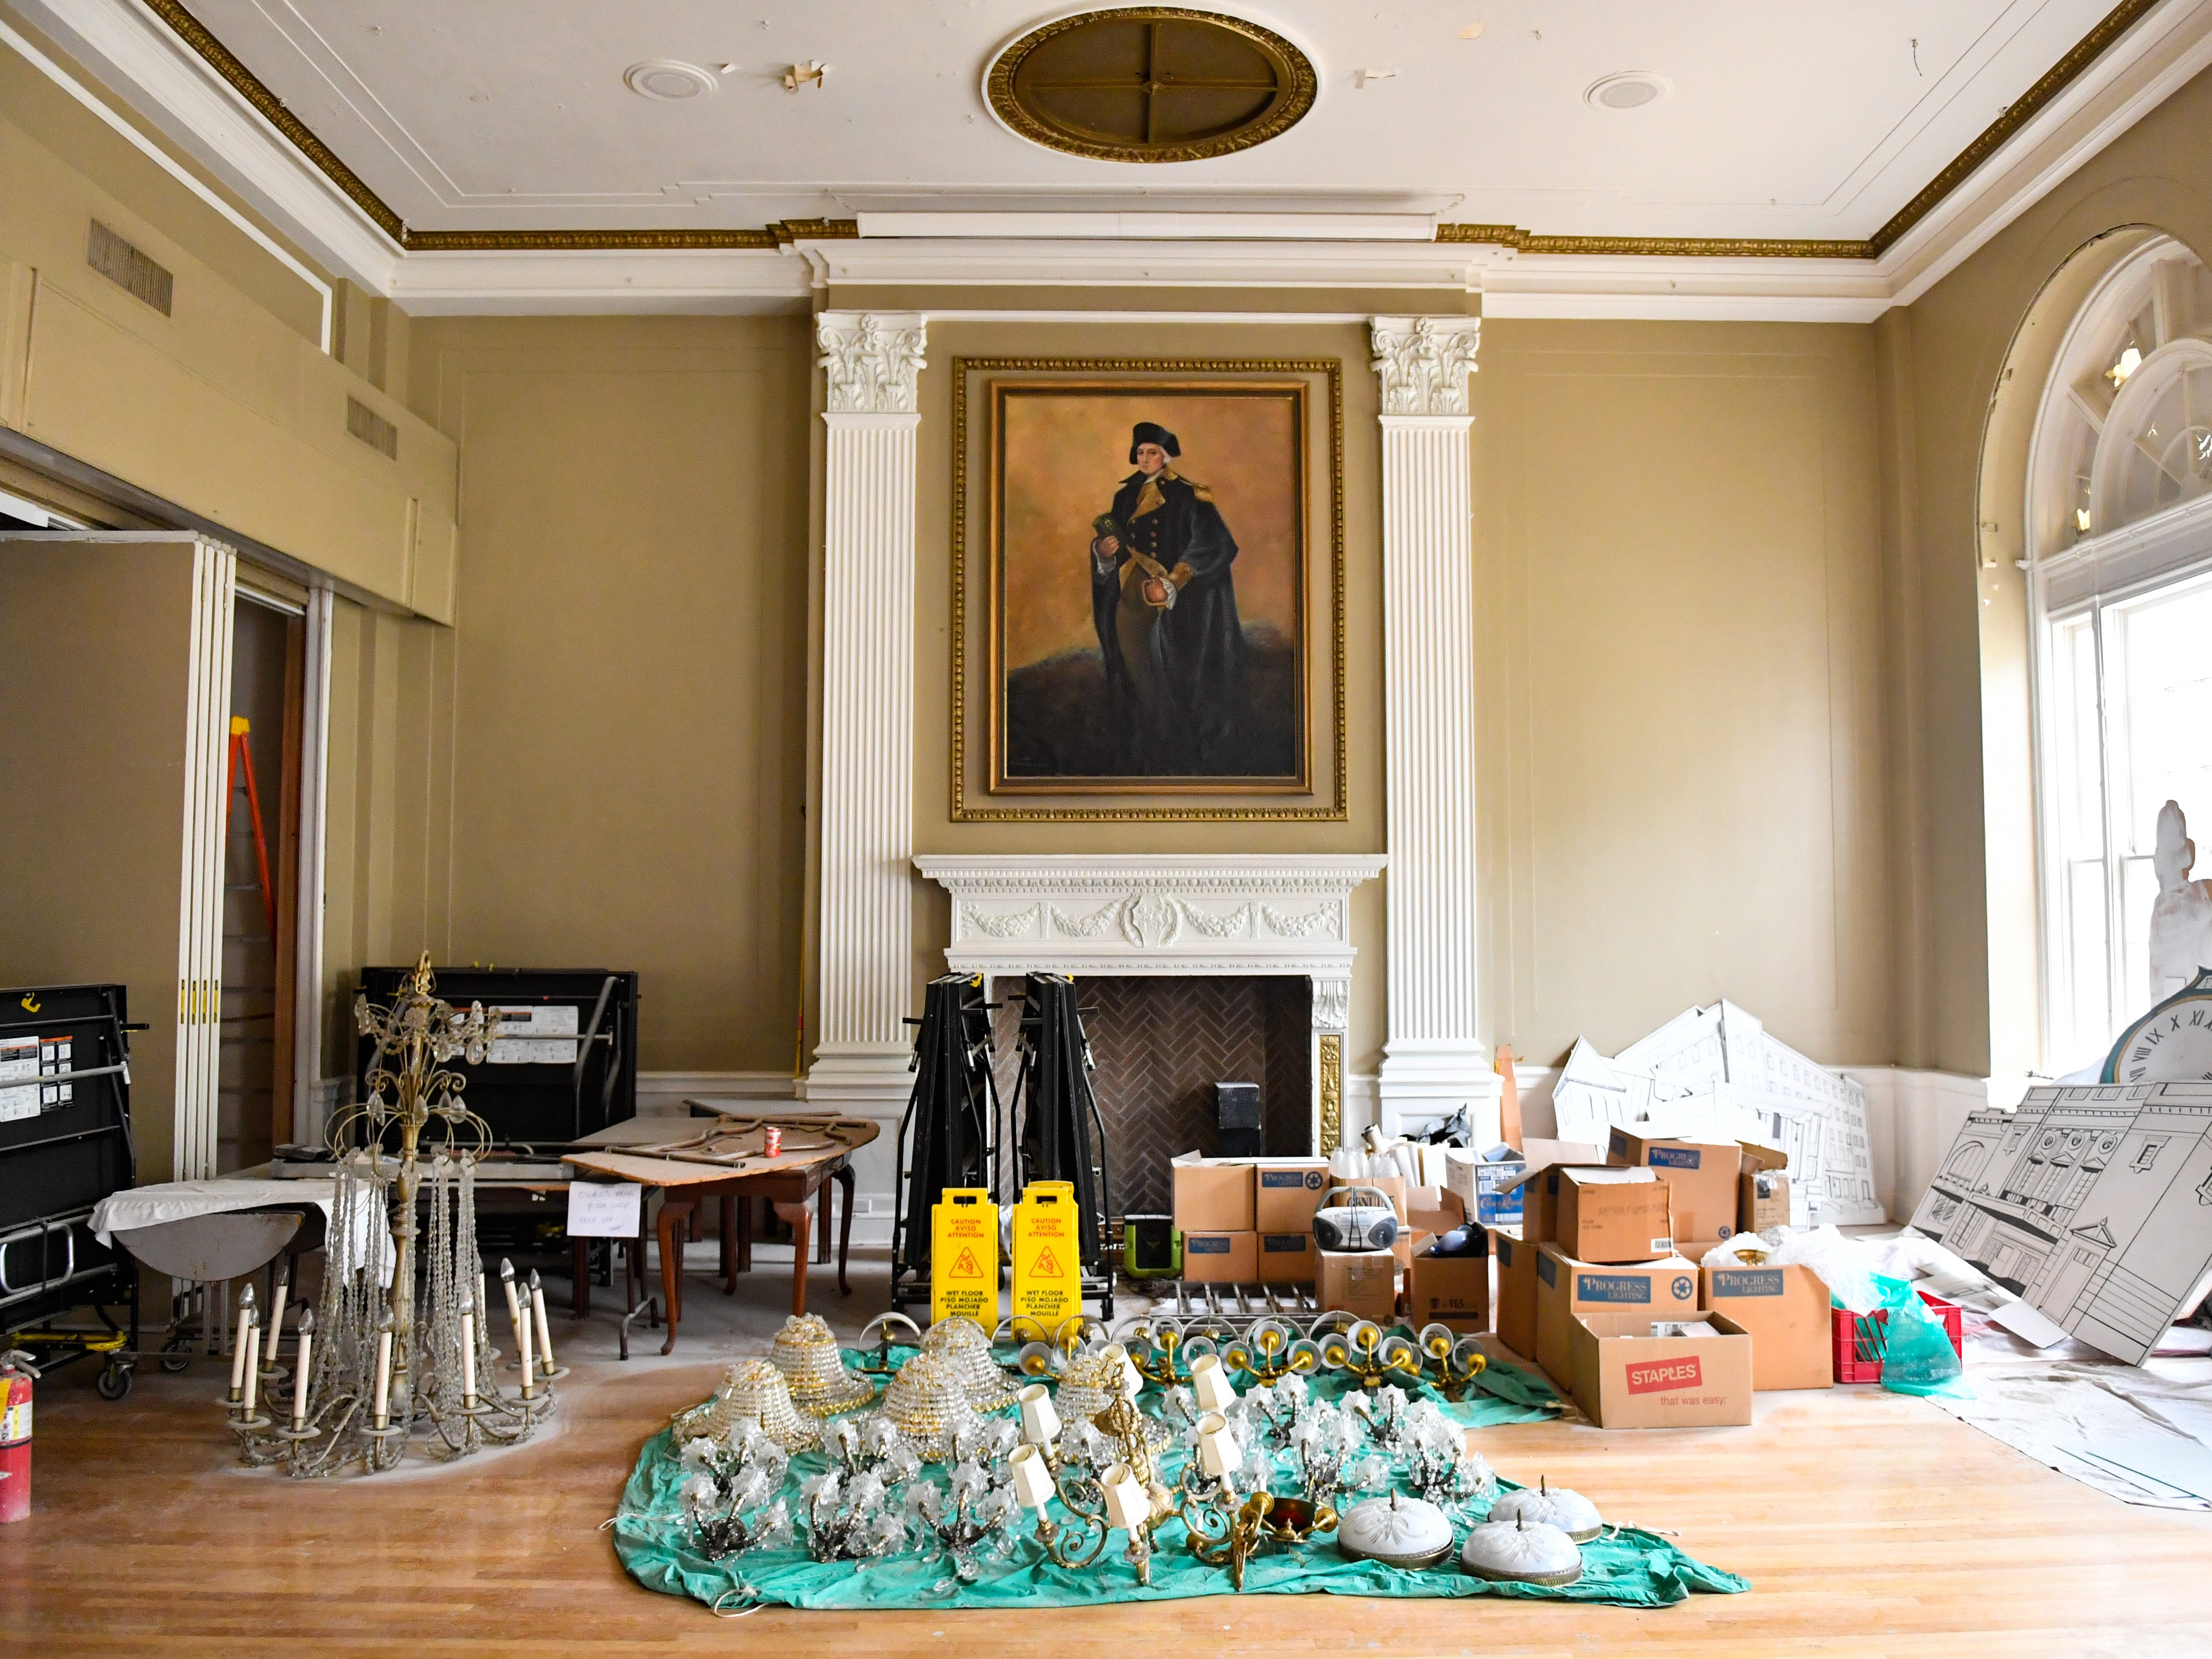 Fragile items are put in the ballroom at the Yorktowne Hotel on October 4, 2018.